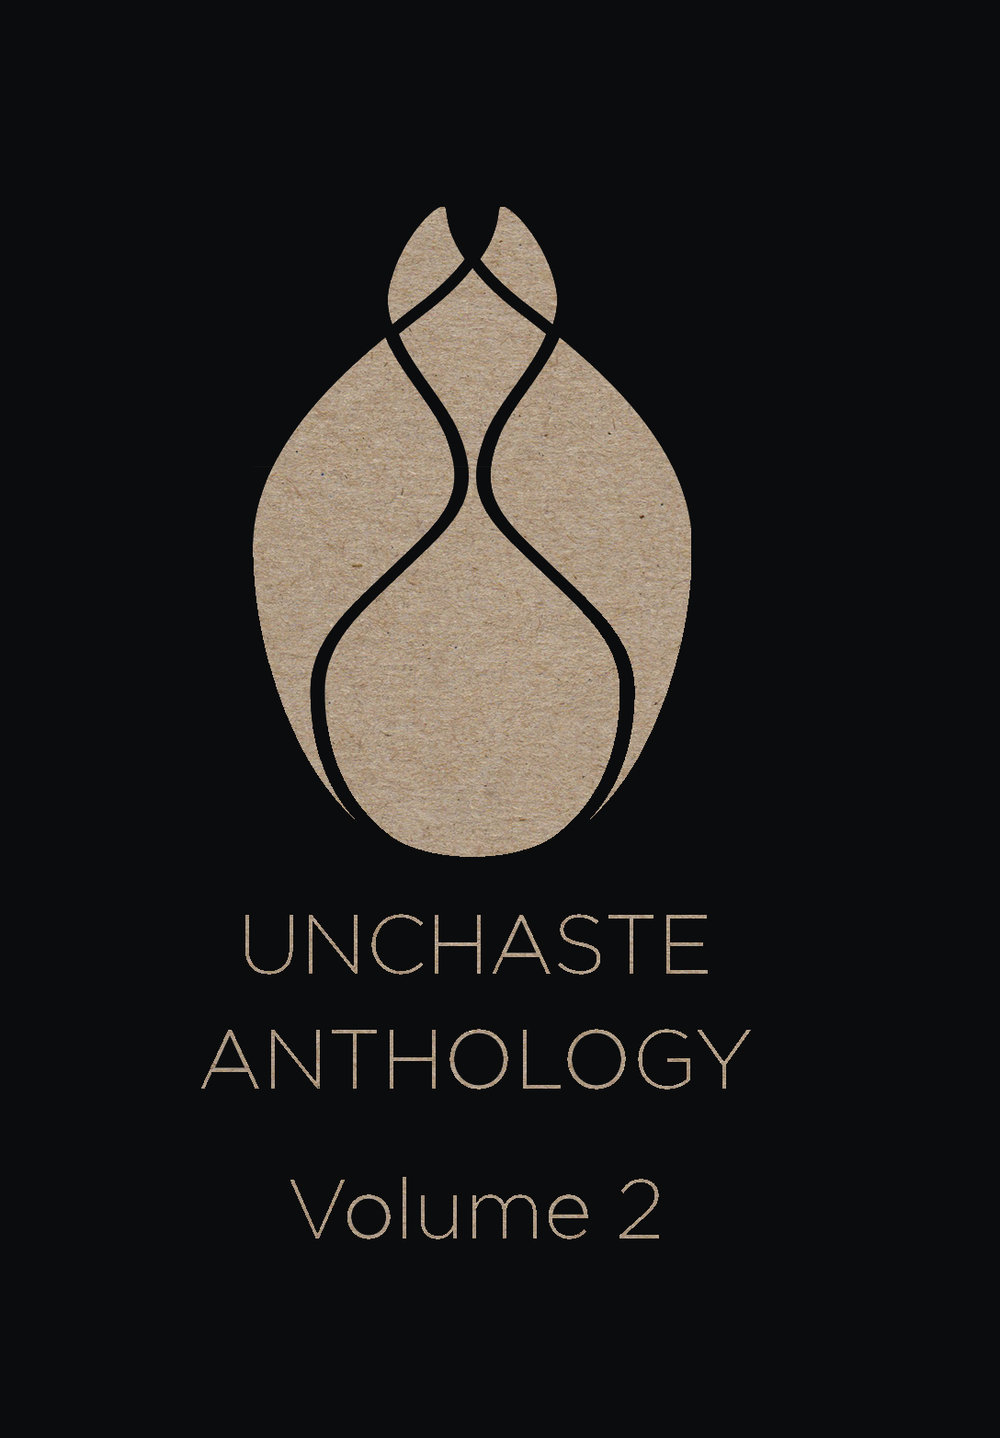 Unchaste Anthology Volume 2 (2017)